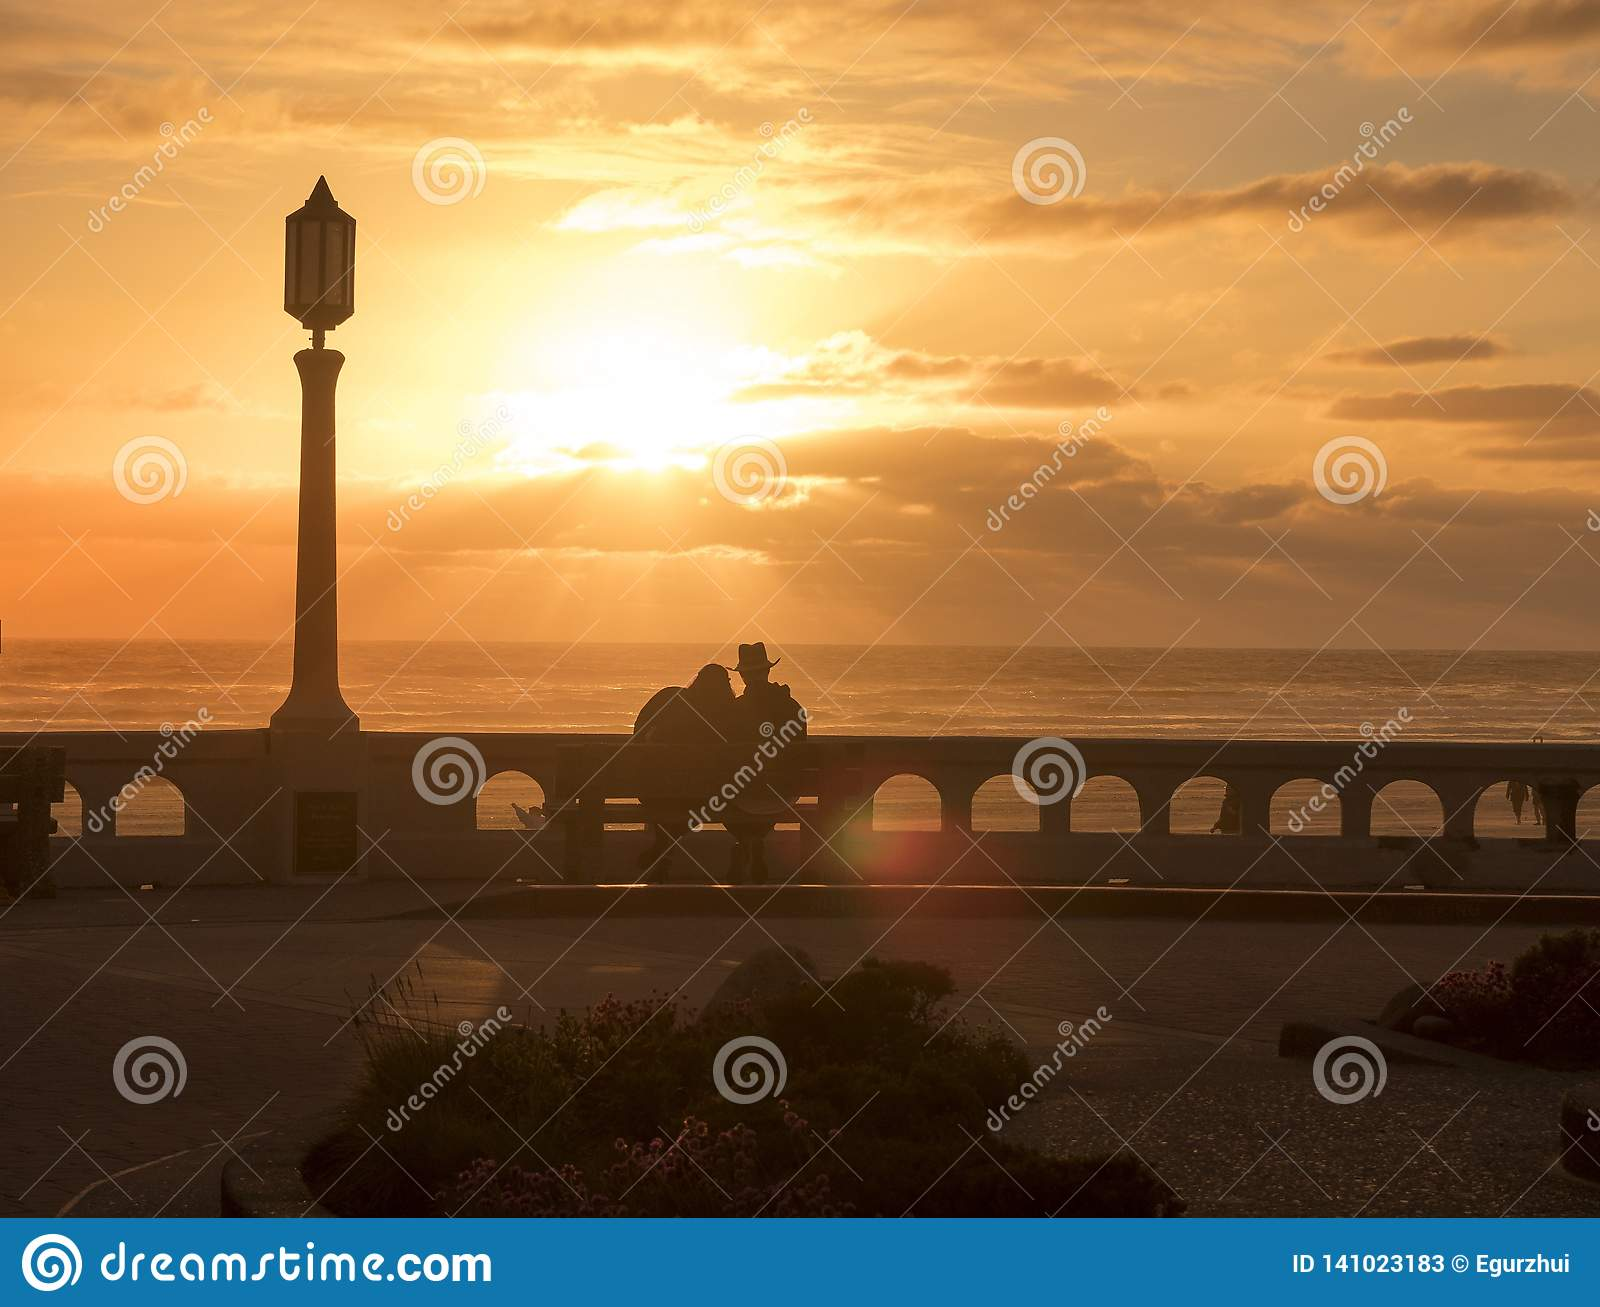 A young man and a woman in love sitting on a bench on the seashore and enjoying a beautiful sunset.